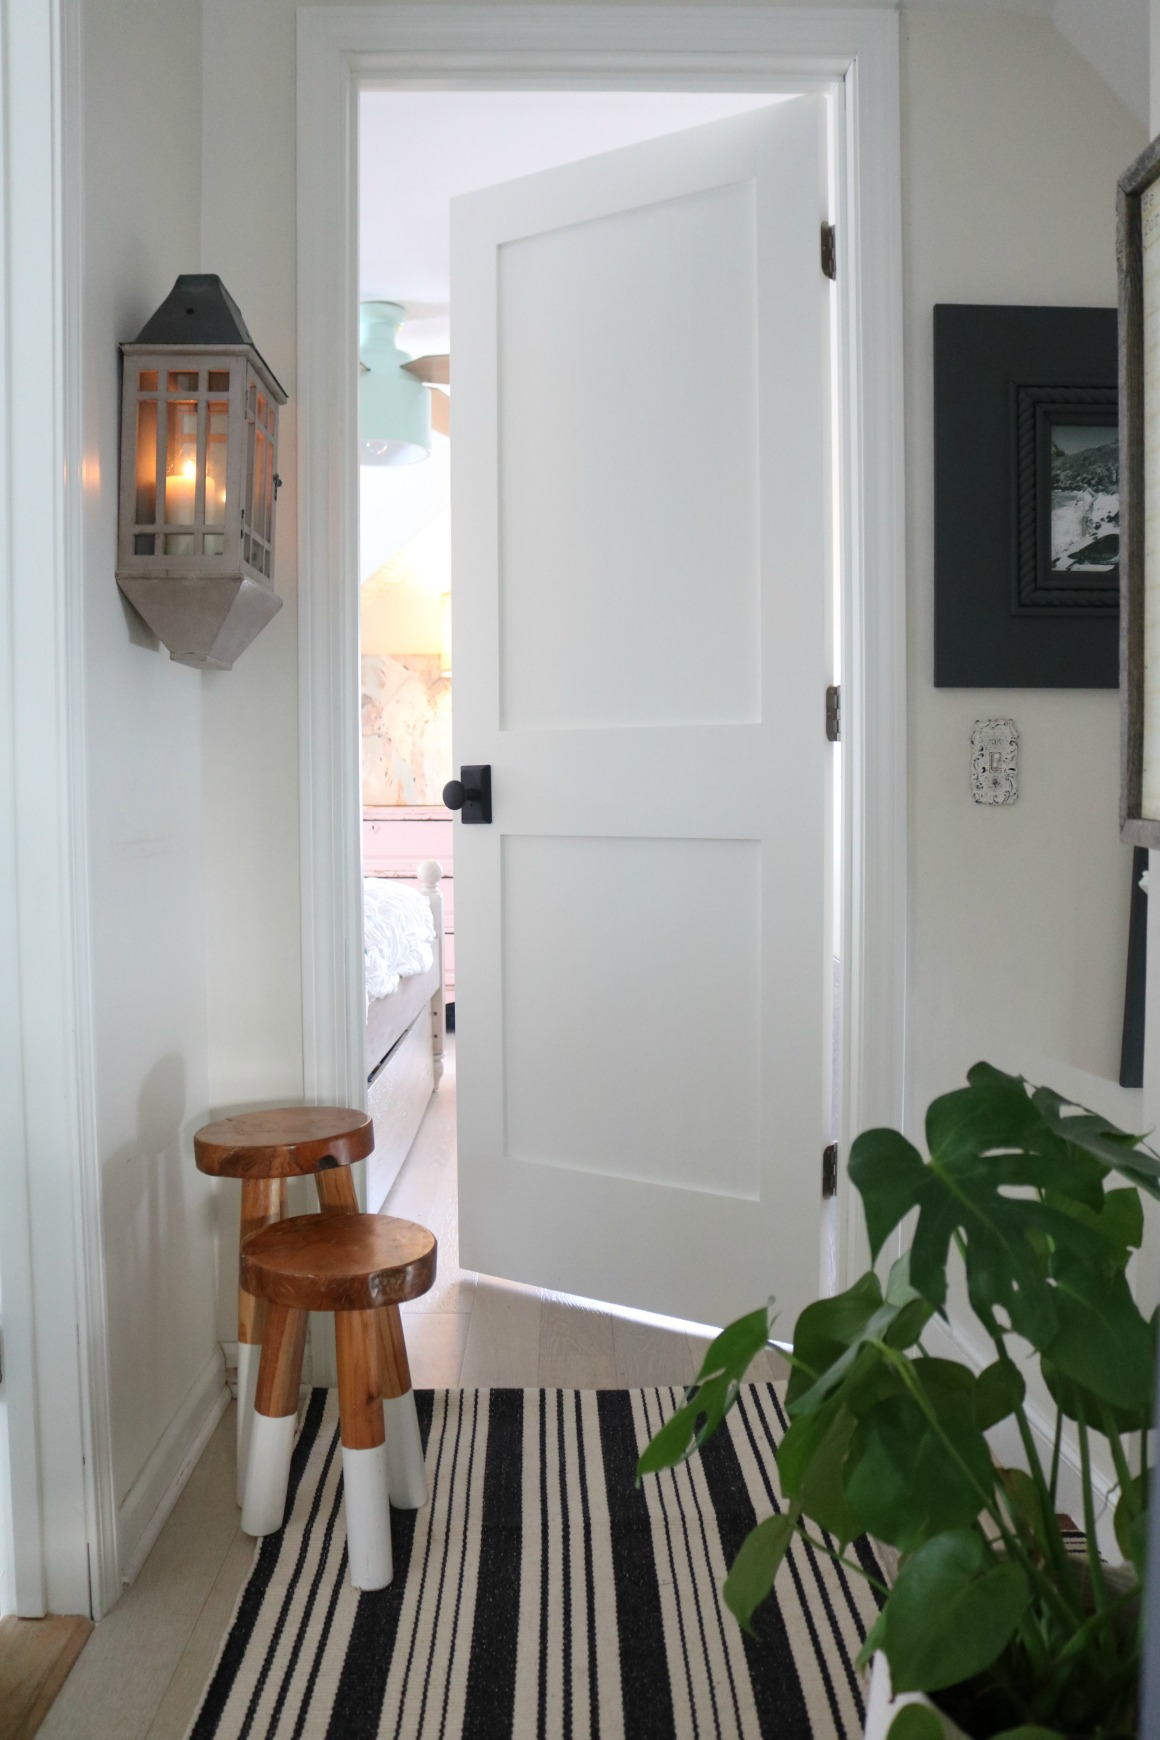 Wooden Internal Doors With: Spring Home Tour With Video Tour Of Our 1100 Square Foot